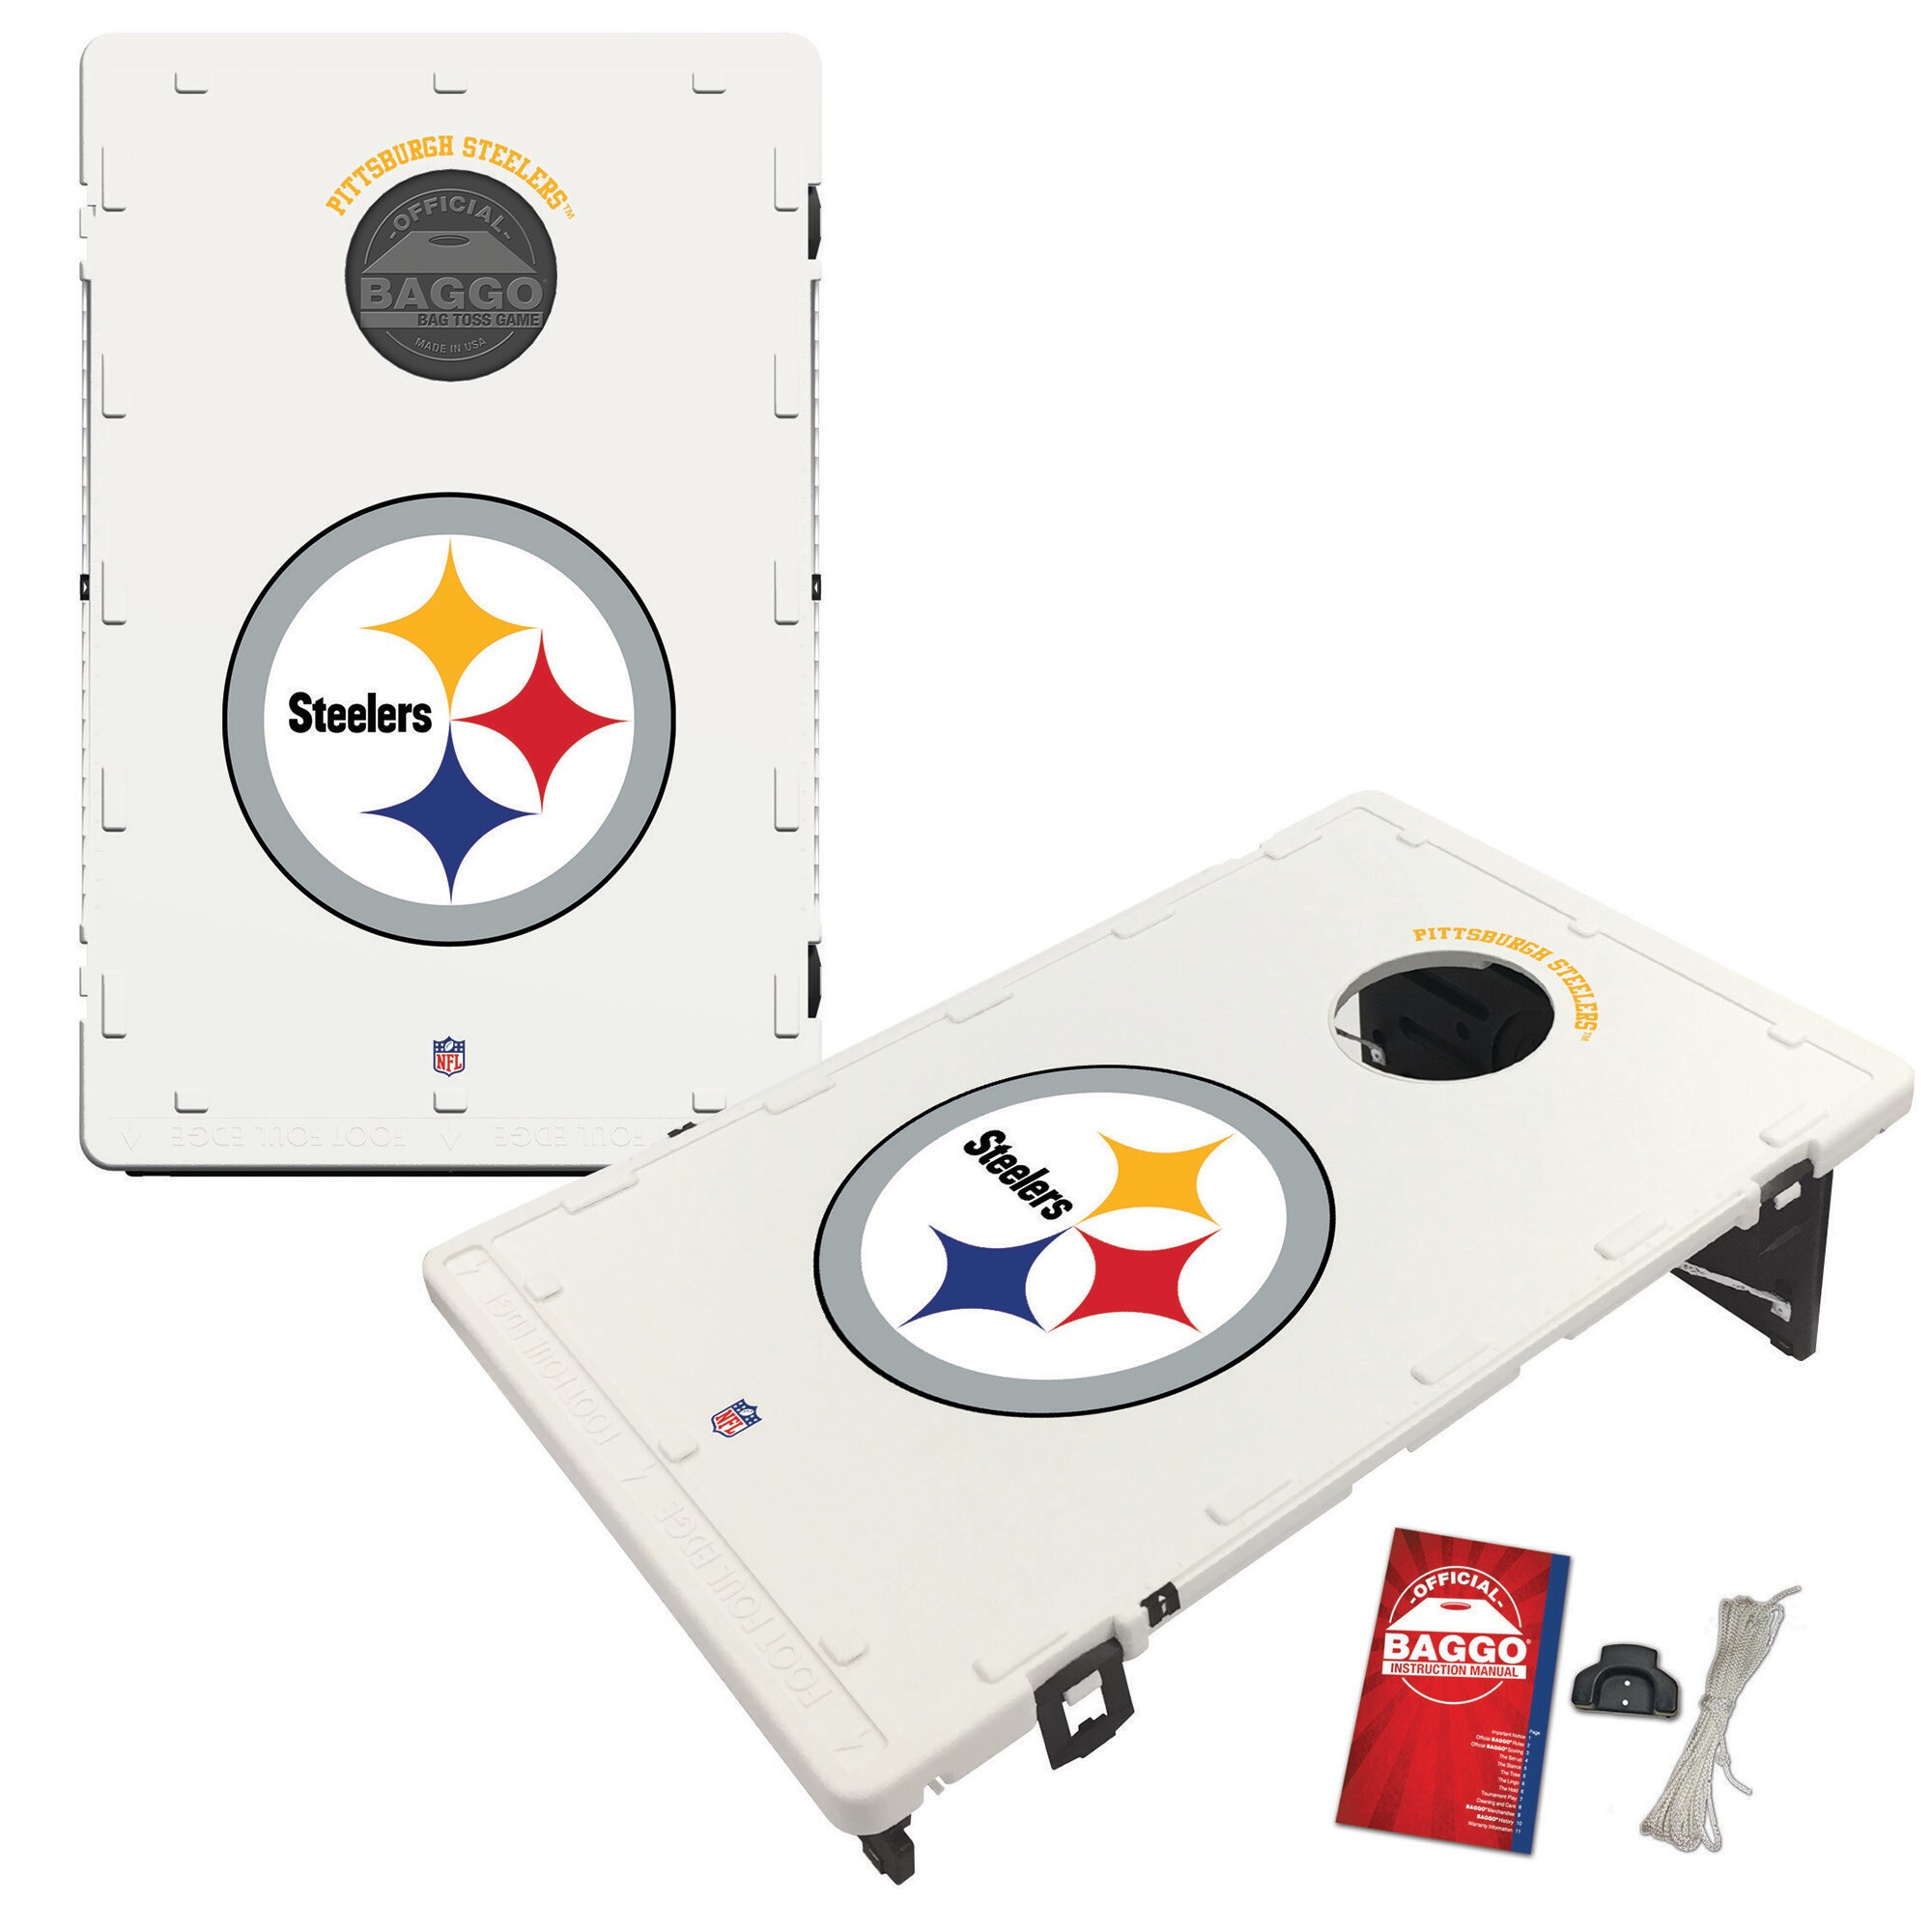 Pittsburgh Steelers 2' x 3' Classic Design BAGGO Cornhole Board Tailgate Toss Set